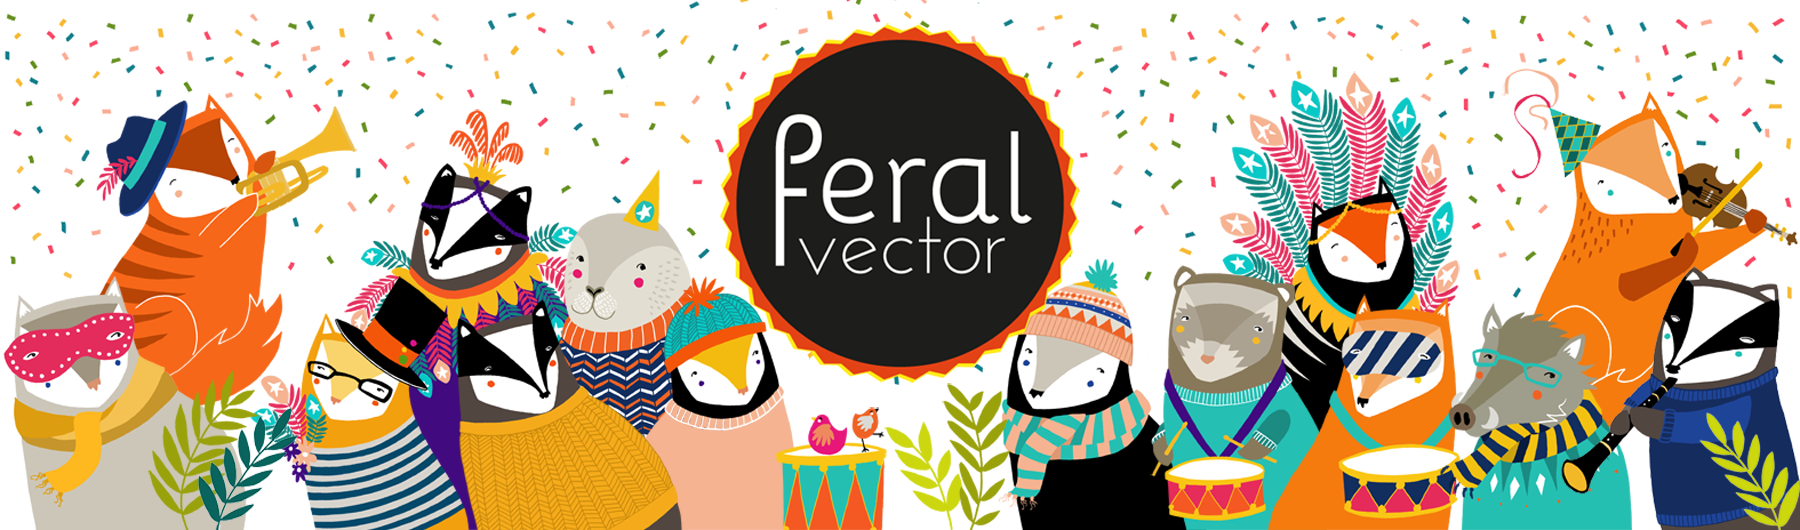 Feral Vector 2016